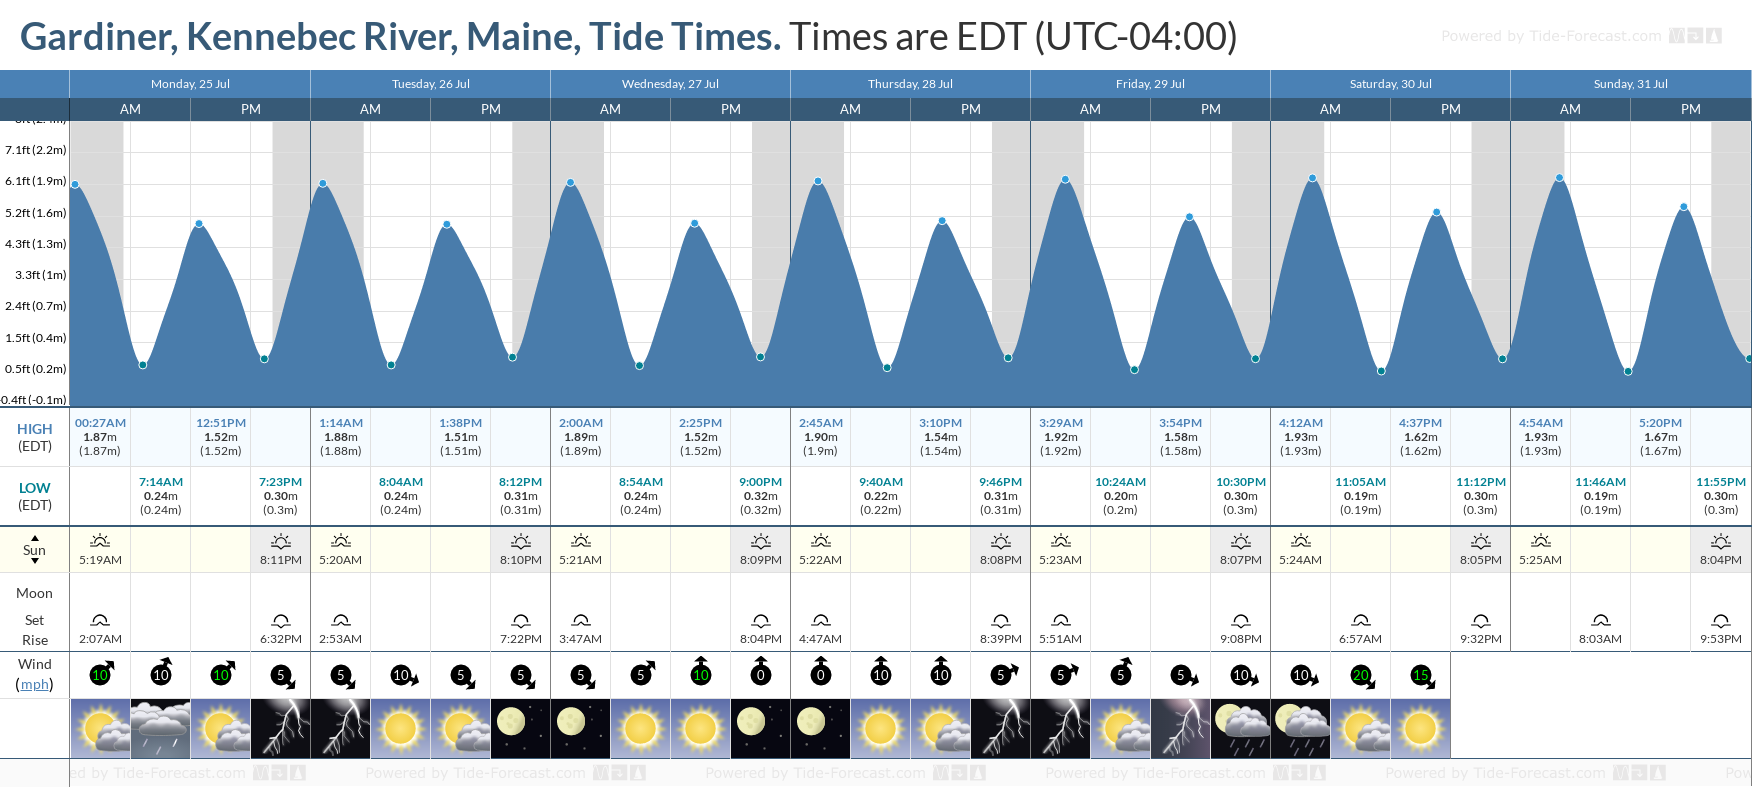 Gardiner, Kennebec River, Maine Tide Chart including high and low tide tide times for the next 7 days